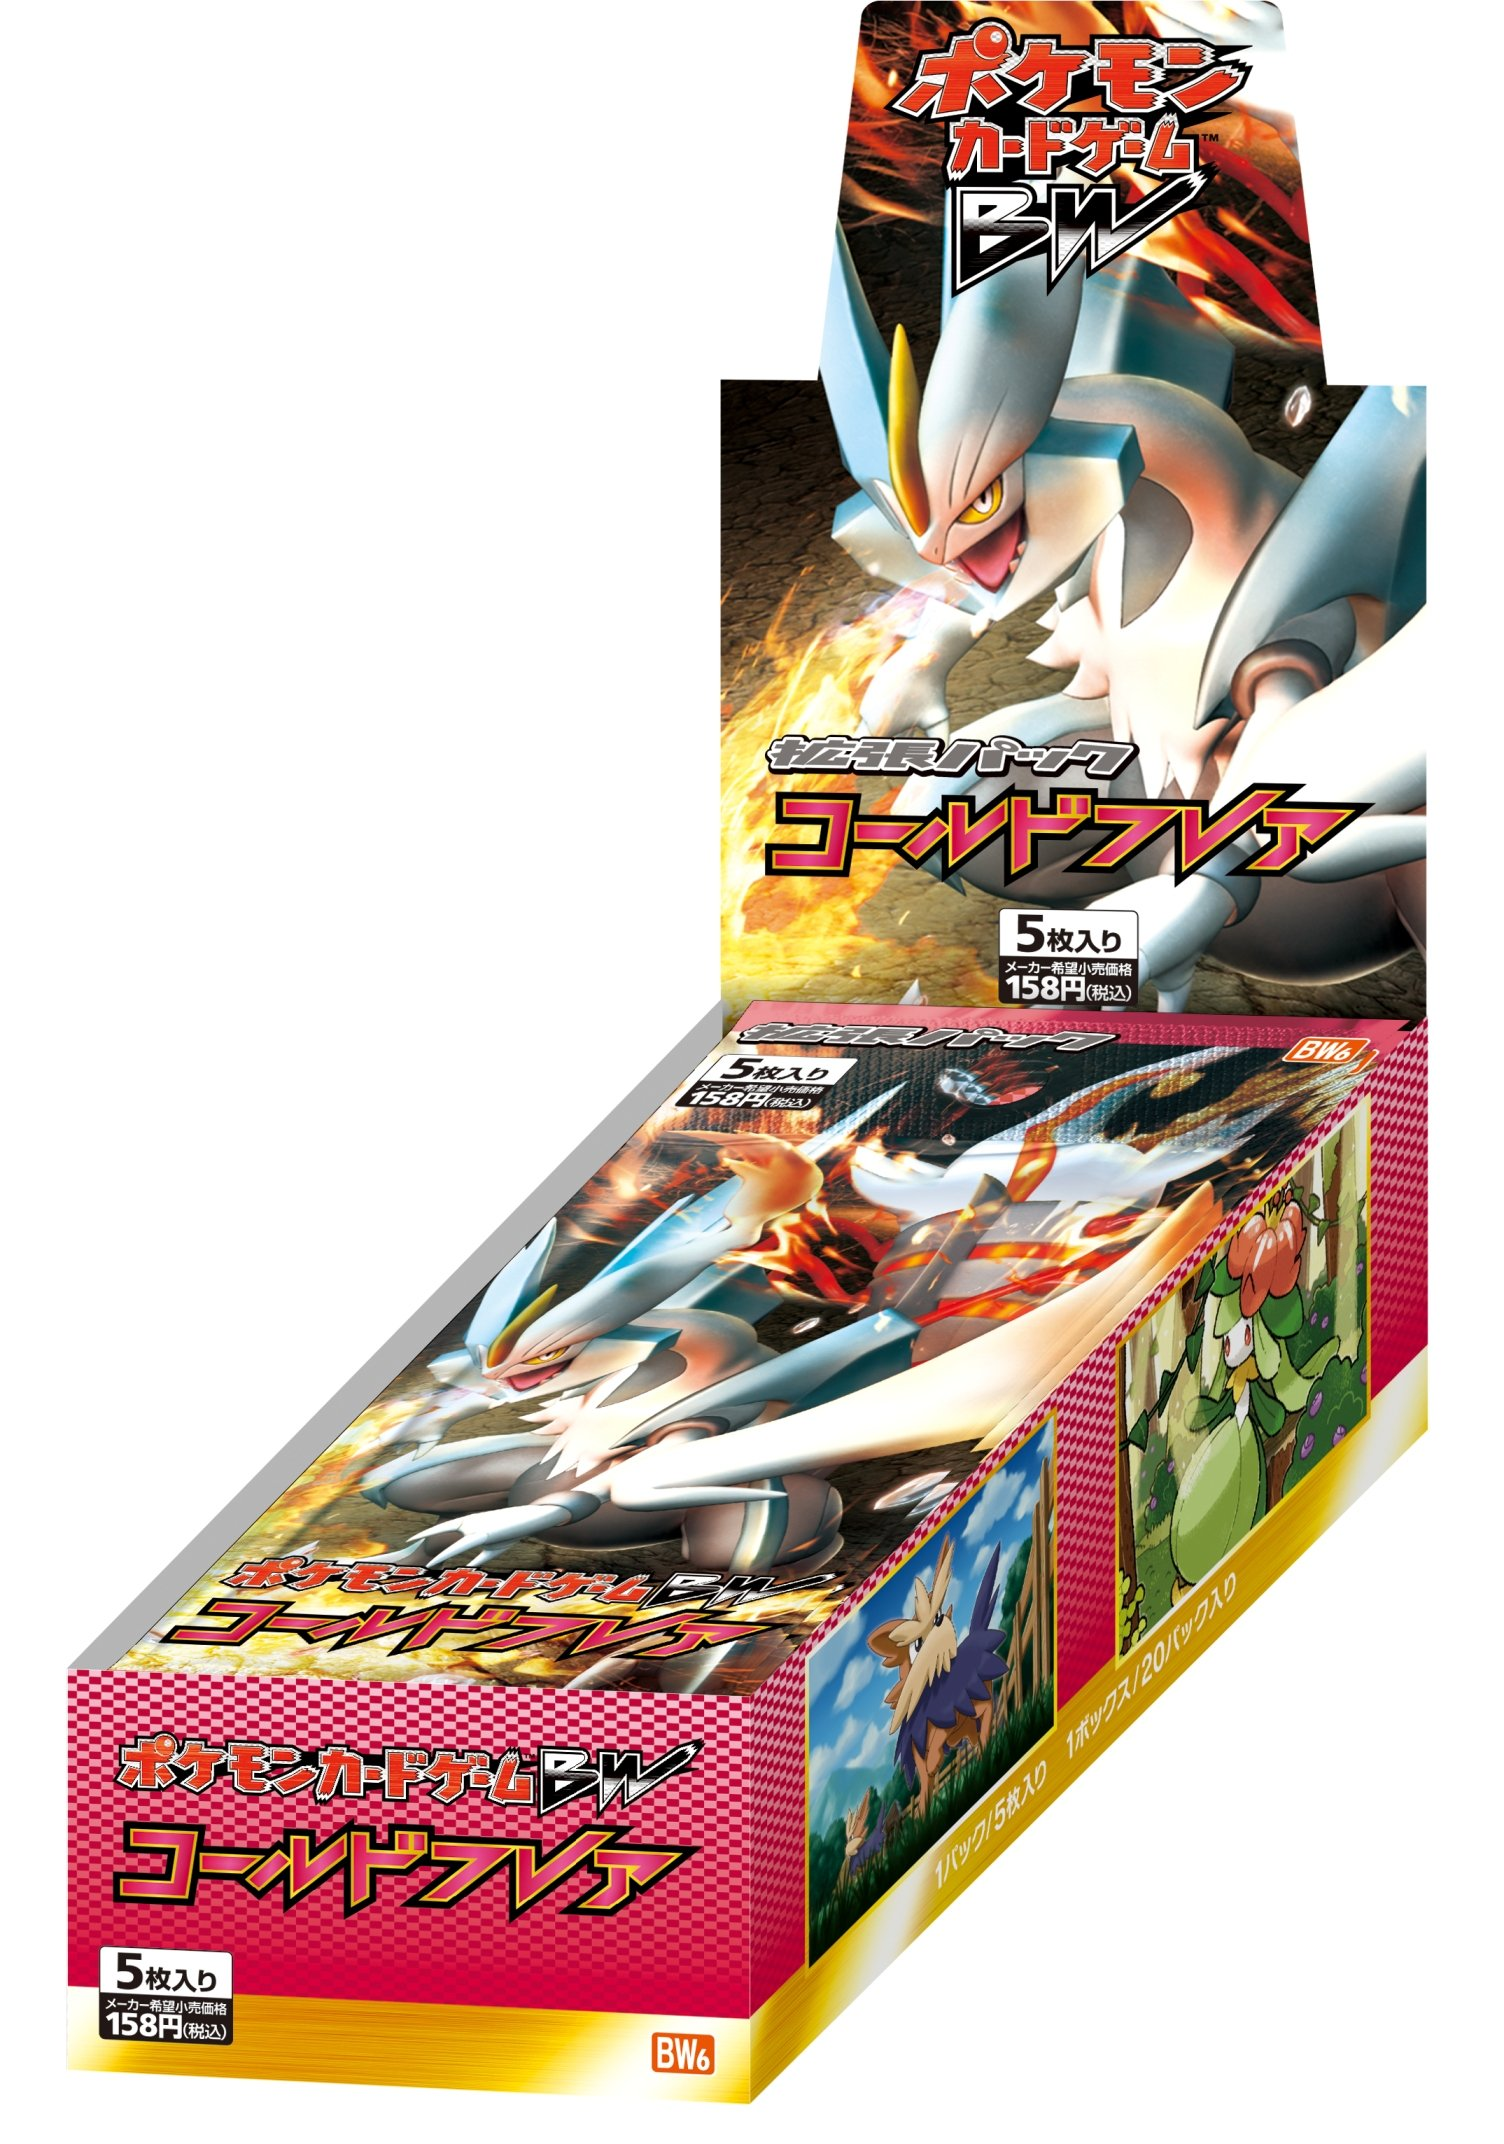 Bw6 Japanese Pokemon Card Game Cold Flare 1st Edition Booster Box by Unknown